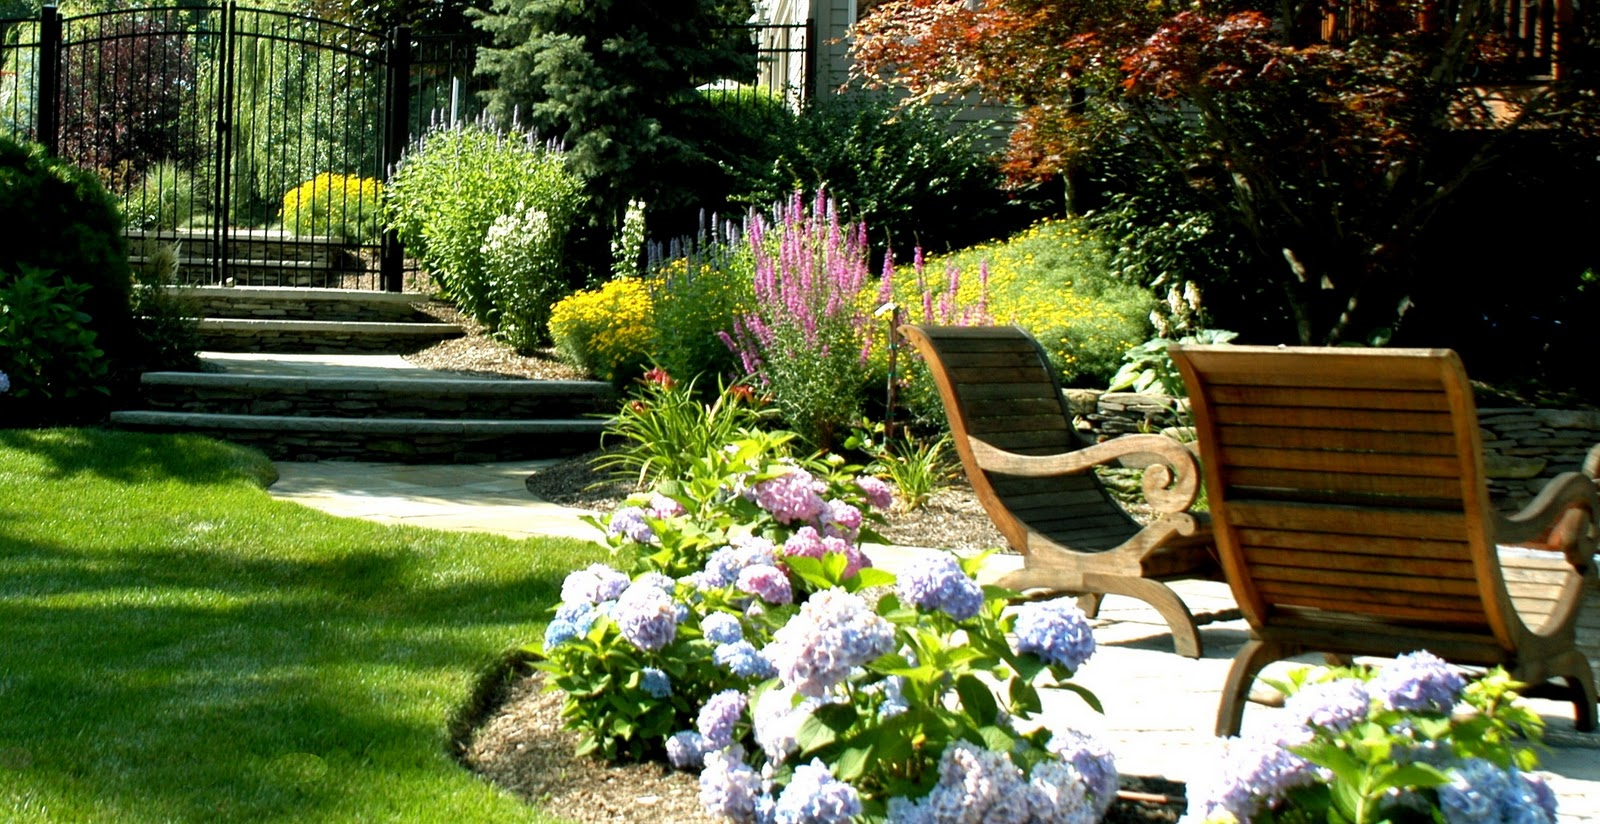 Hightechlandscapes new jersey landscape design for Garden designs and landscapes